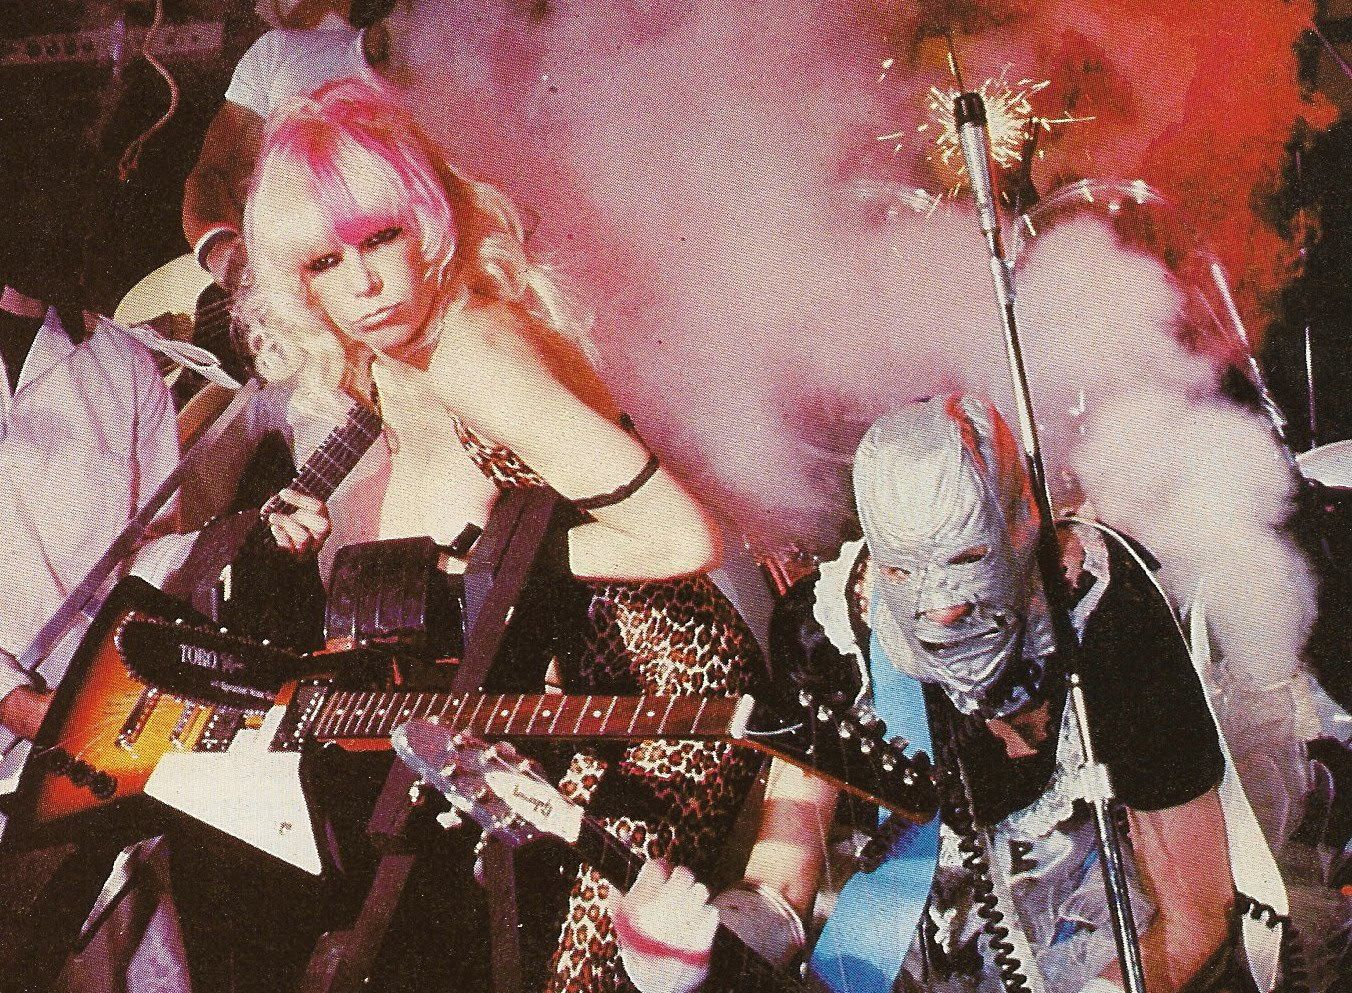 Wendy O. Williams & The Plasmatics Chain Sawing A Guitar In Half